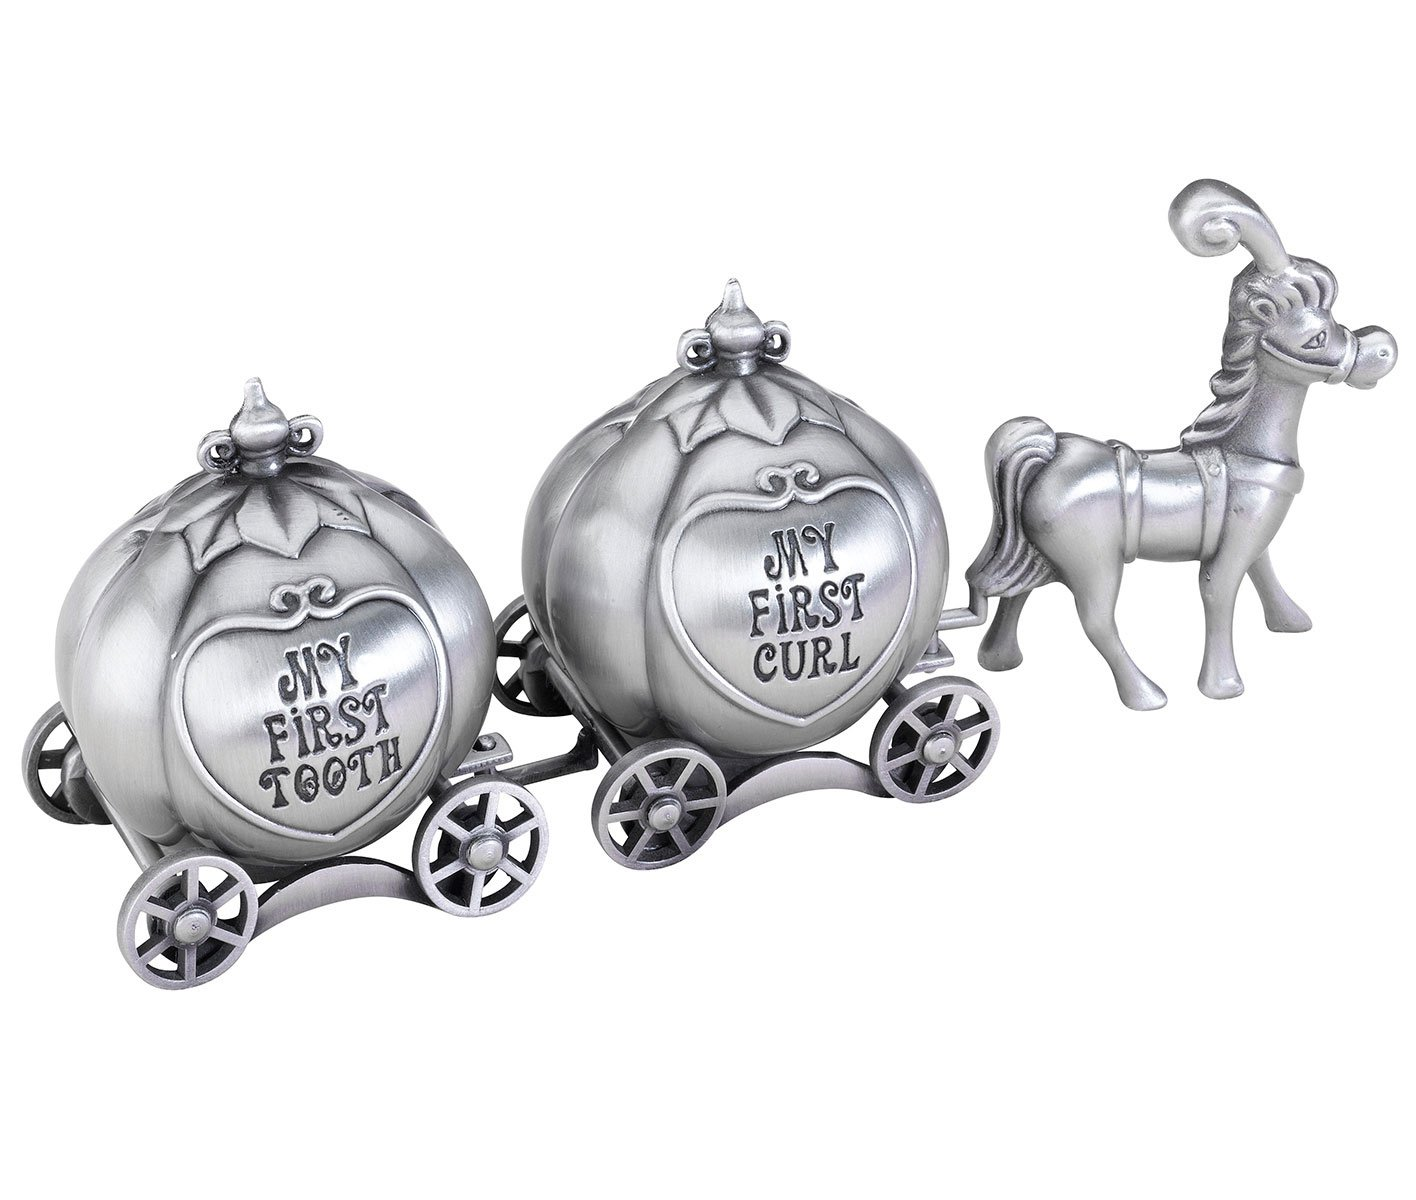 Lillian Rose Keepsake Pewter Tooth and Curl Box, Fairytale Coach, 2 x 5 2 x 5 Lillian Rose Inc. 24TC720 C